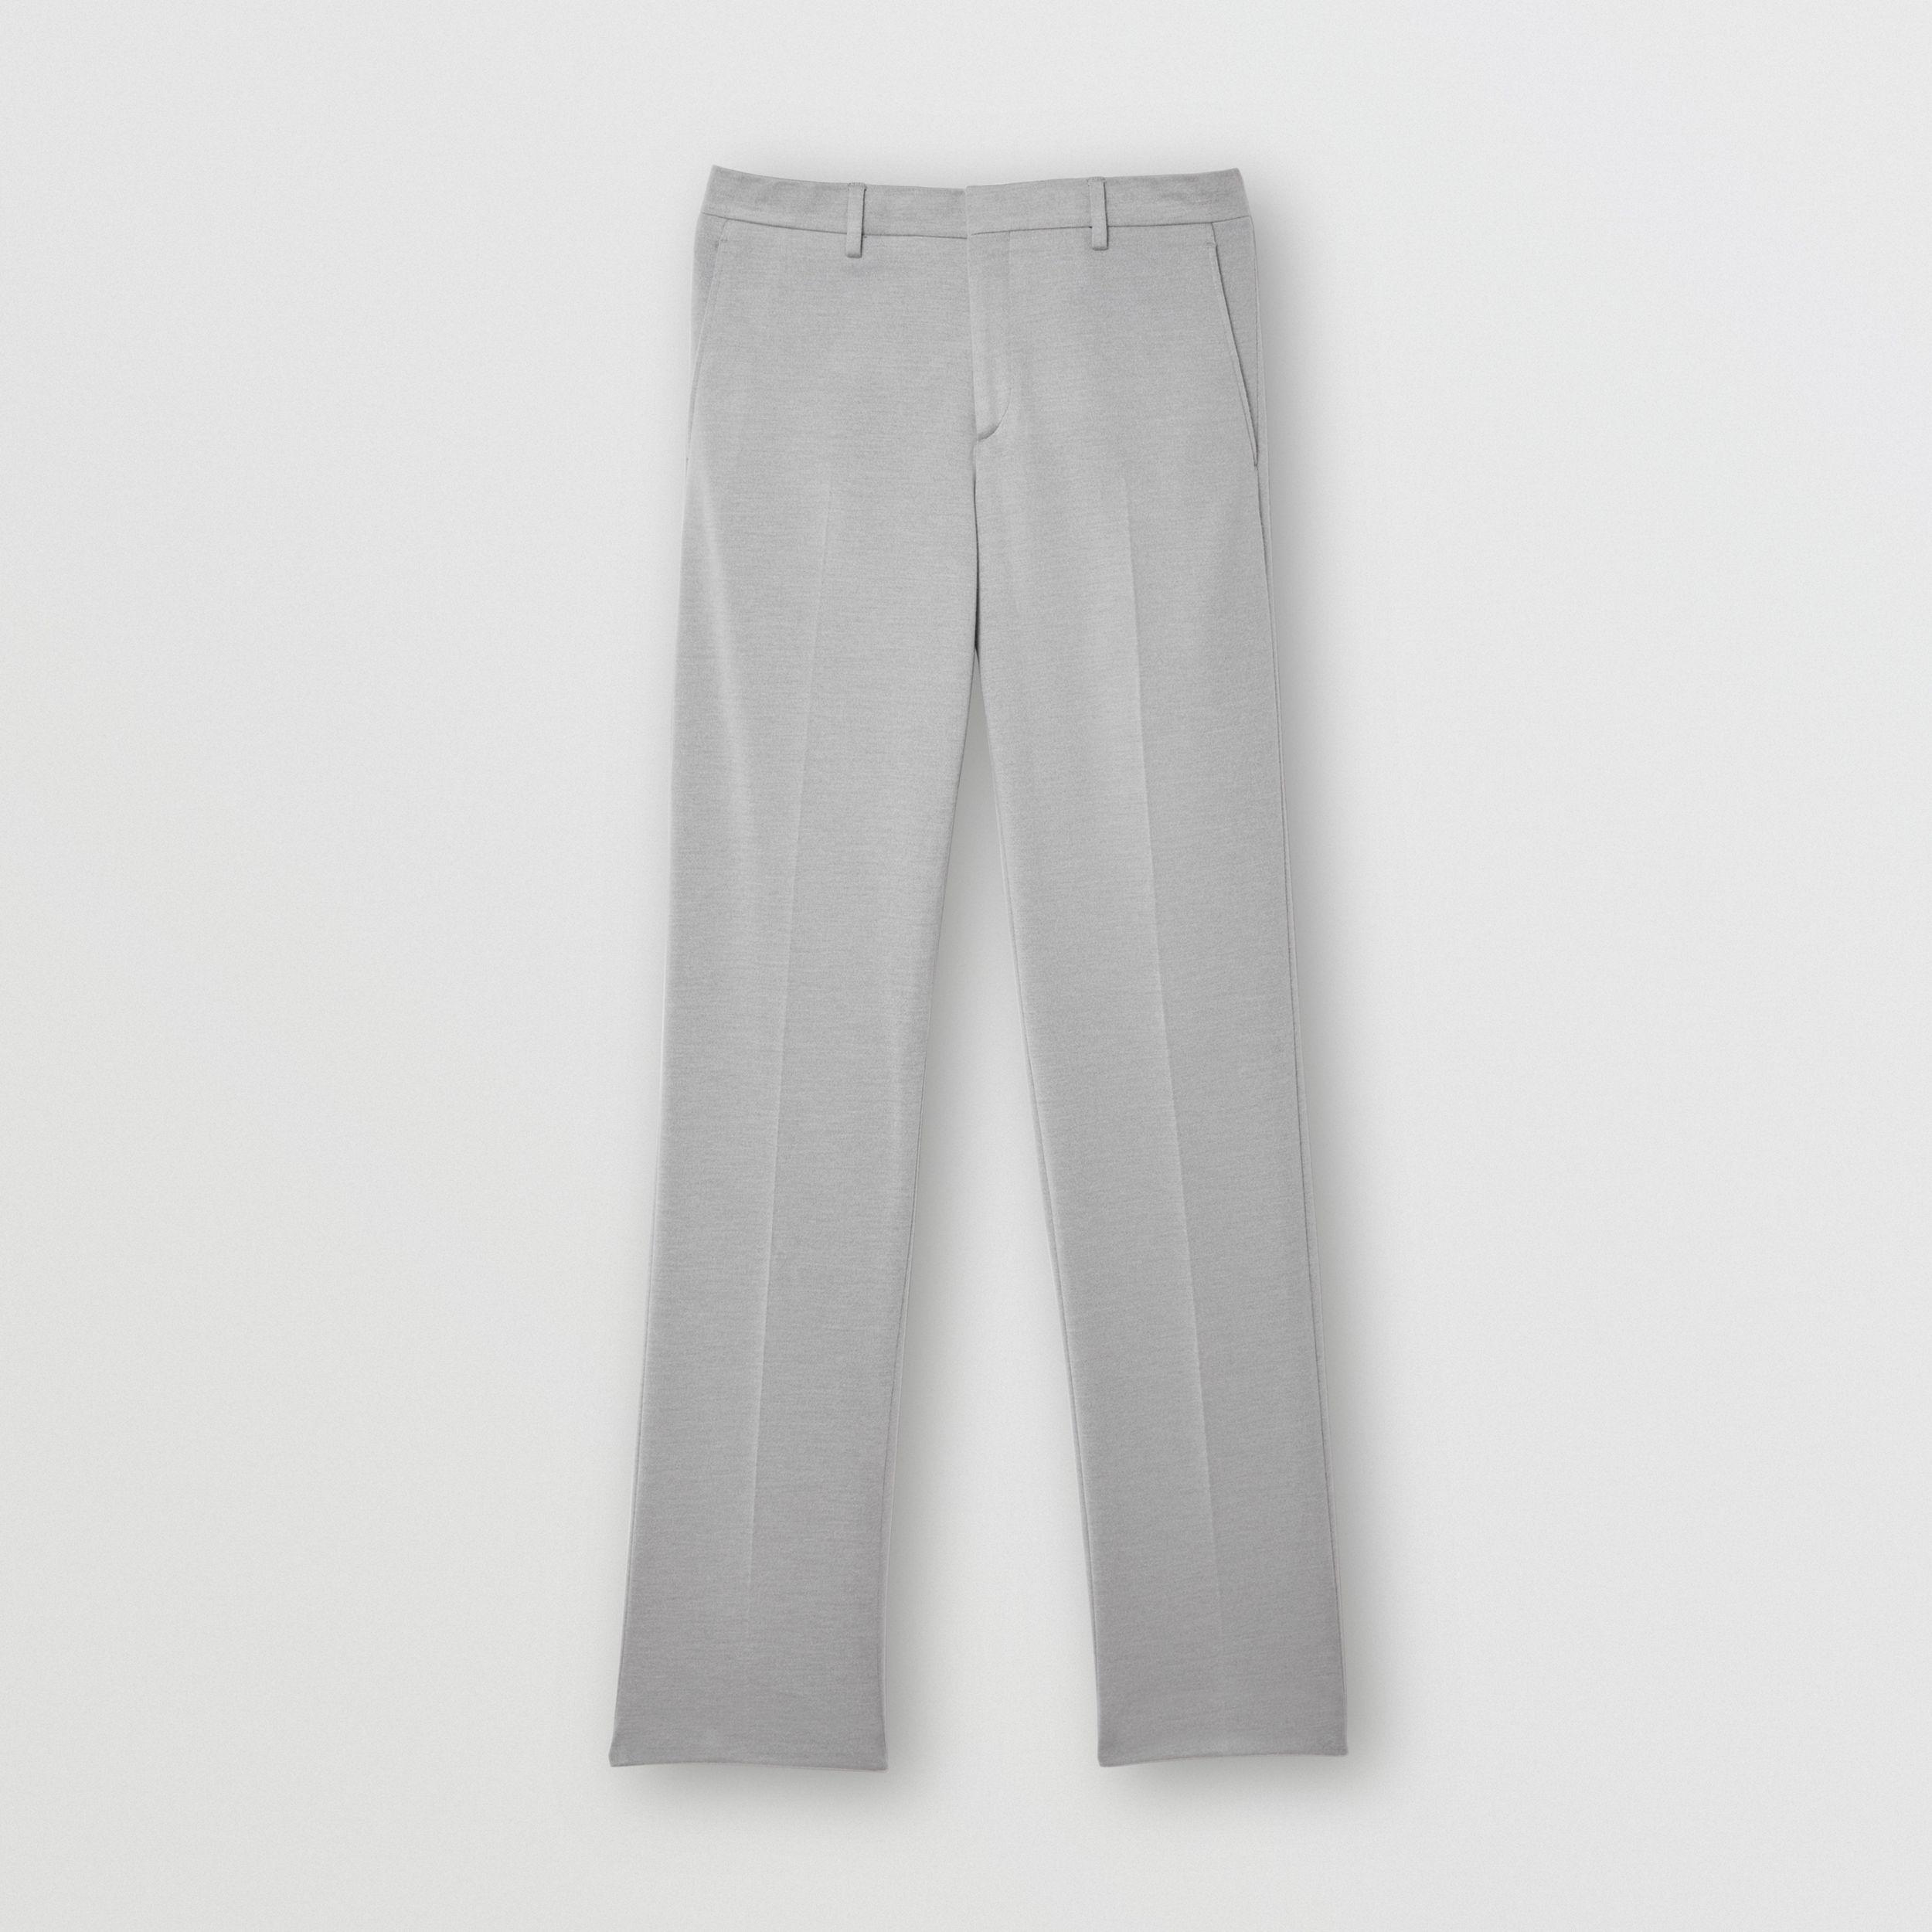 English Fit Cashmere Silk Jersey Tailored Trousers in Light Pebble Grey - Men | Burberry - 4